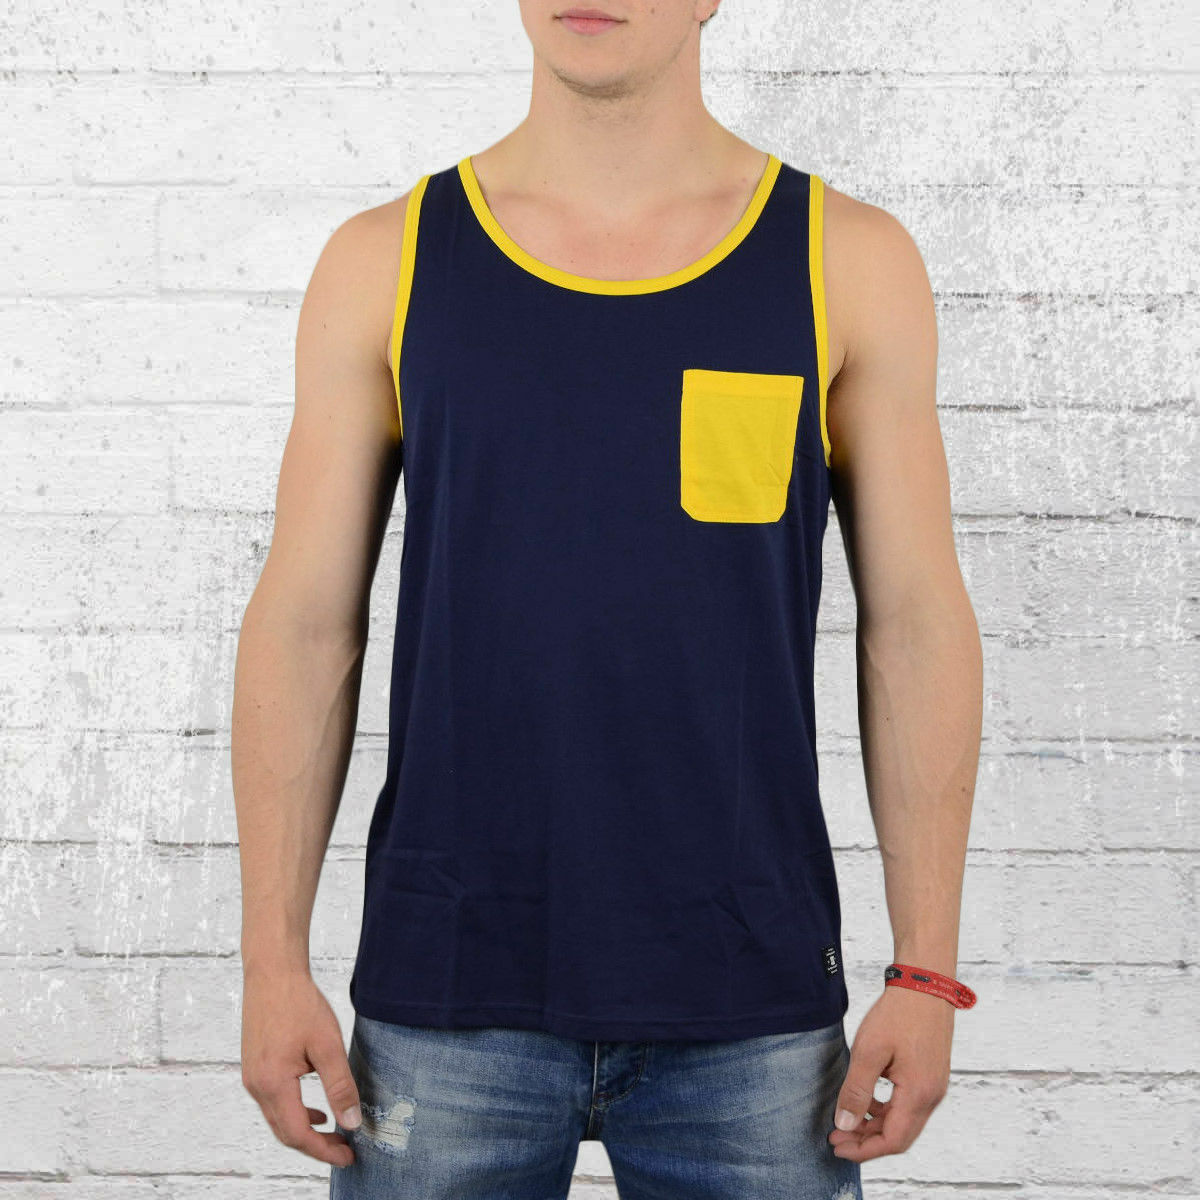 DC Chaussures Contra Top Tank Top Contra Pocket Hommes Bleu Jaune Poitrine Sac Hommes Muscle Shirt b36693